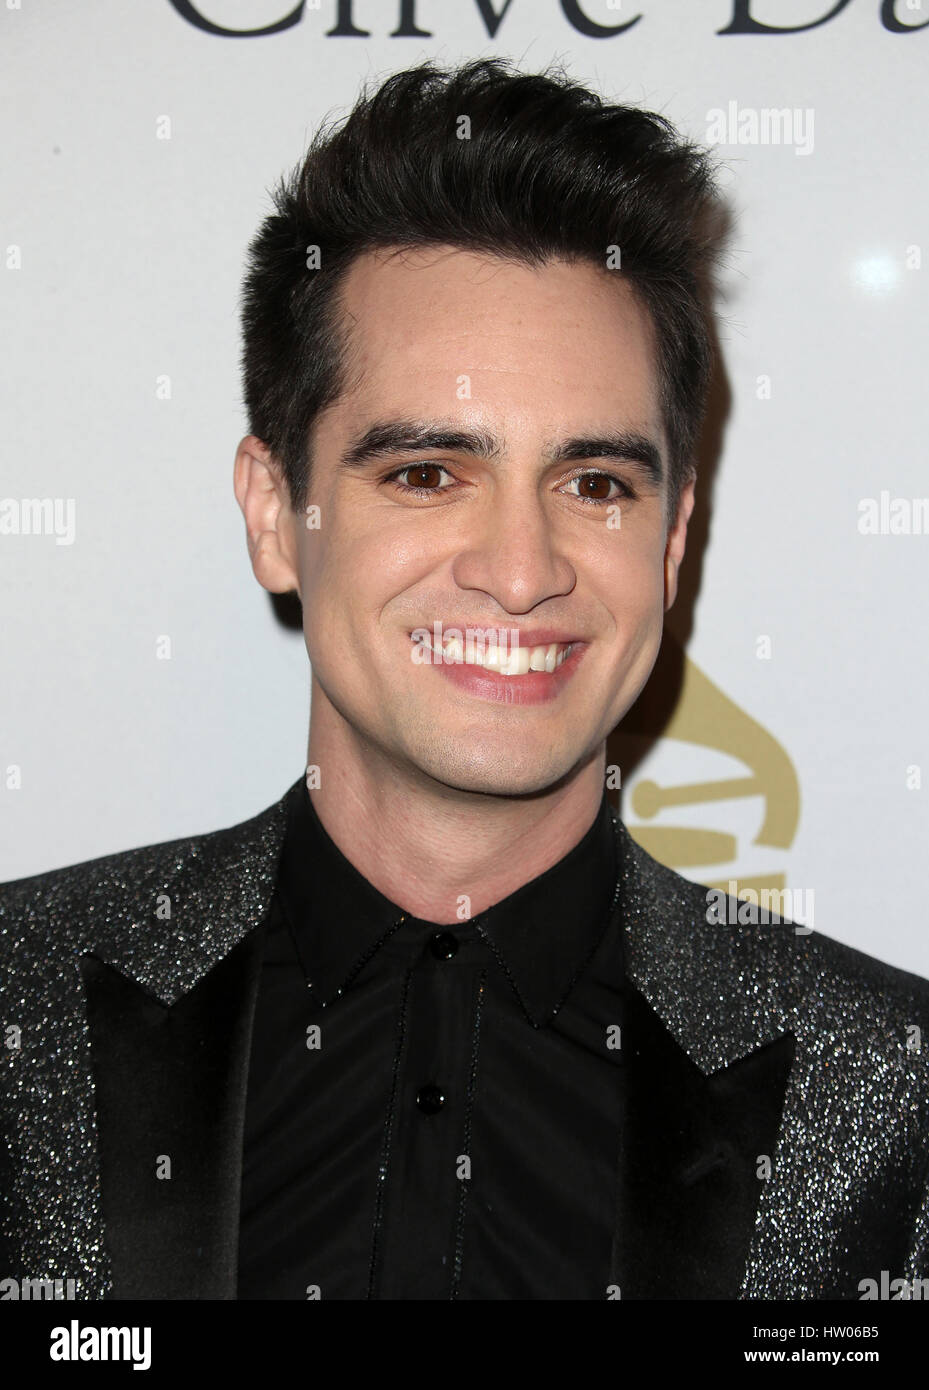 2017 Brendon Urie Stock Photos 2017 Brendon Urie Stock Images Alamy